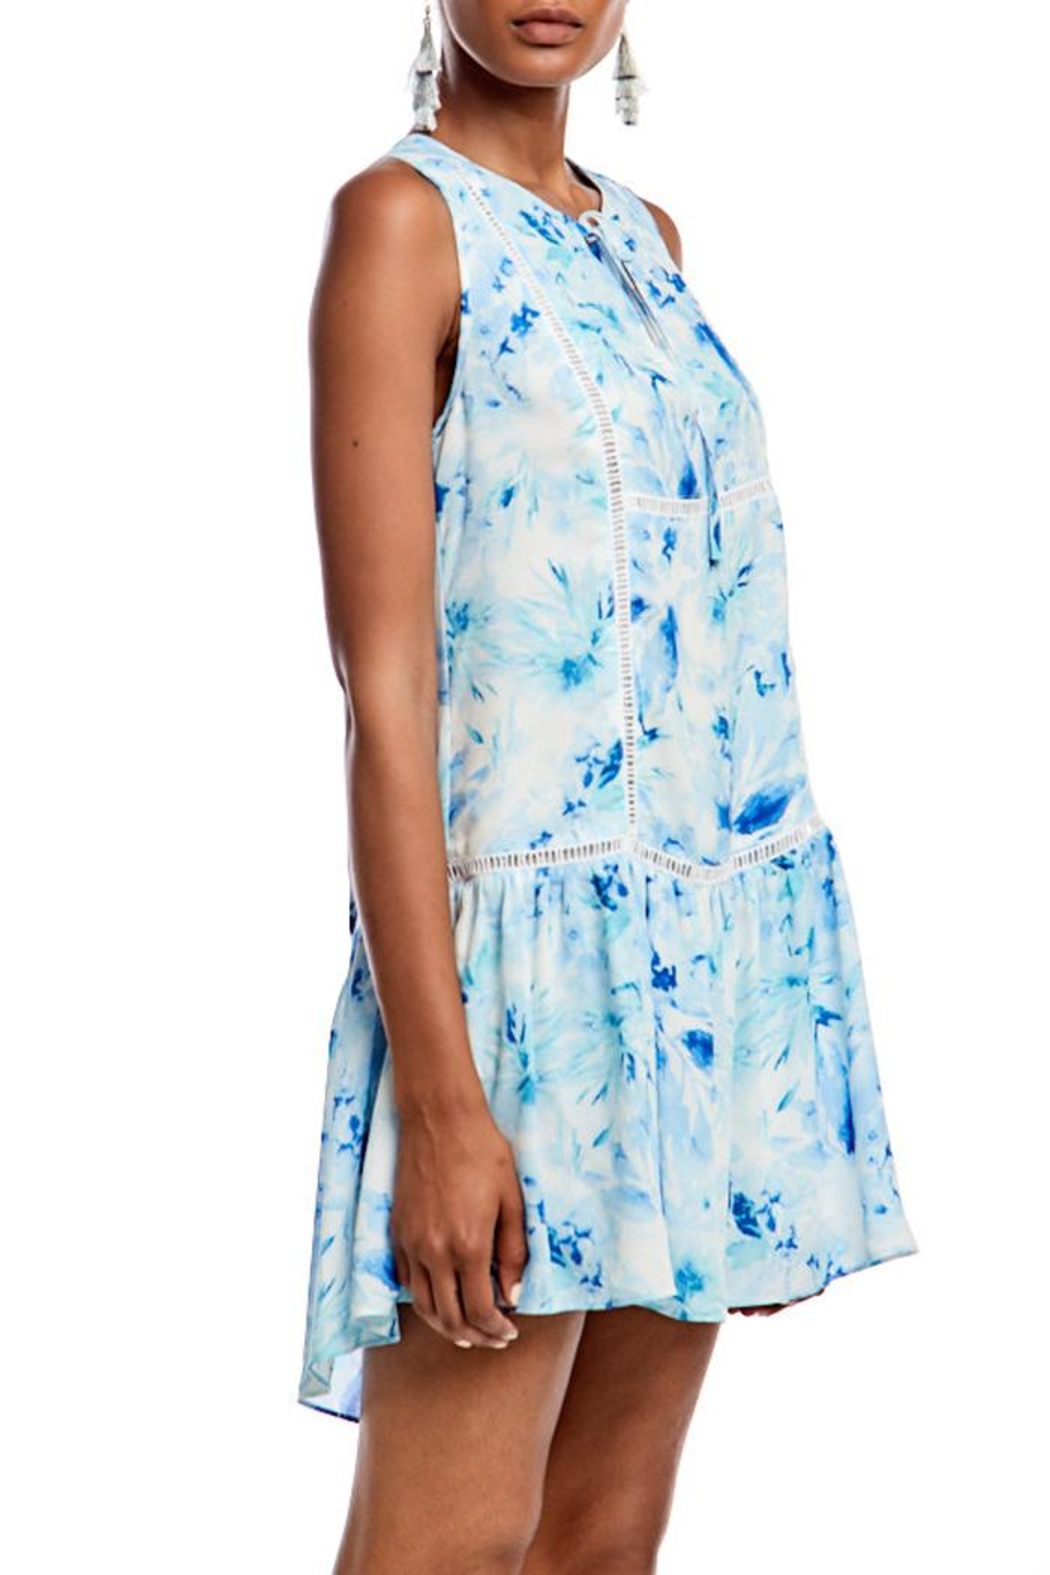 Asher by Fab'rik Lincoln Dress Blue - Front Full Image